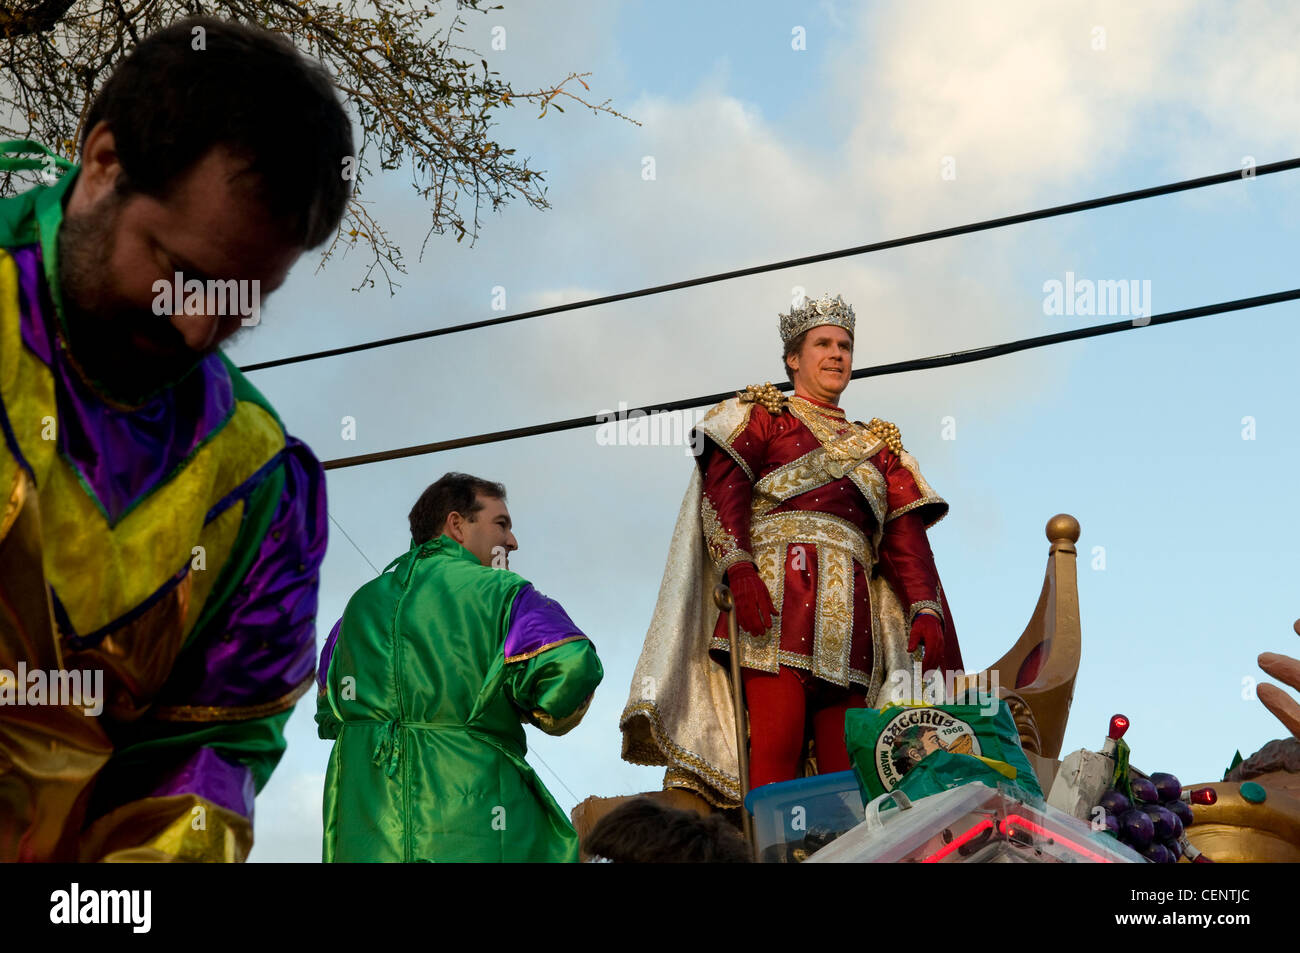 Will Ferrell on the king's float, New Orleans Mardi Gras King of Bacchus 2012 Stock Photo